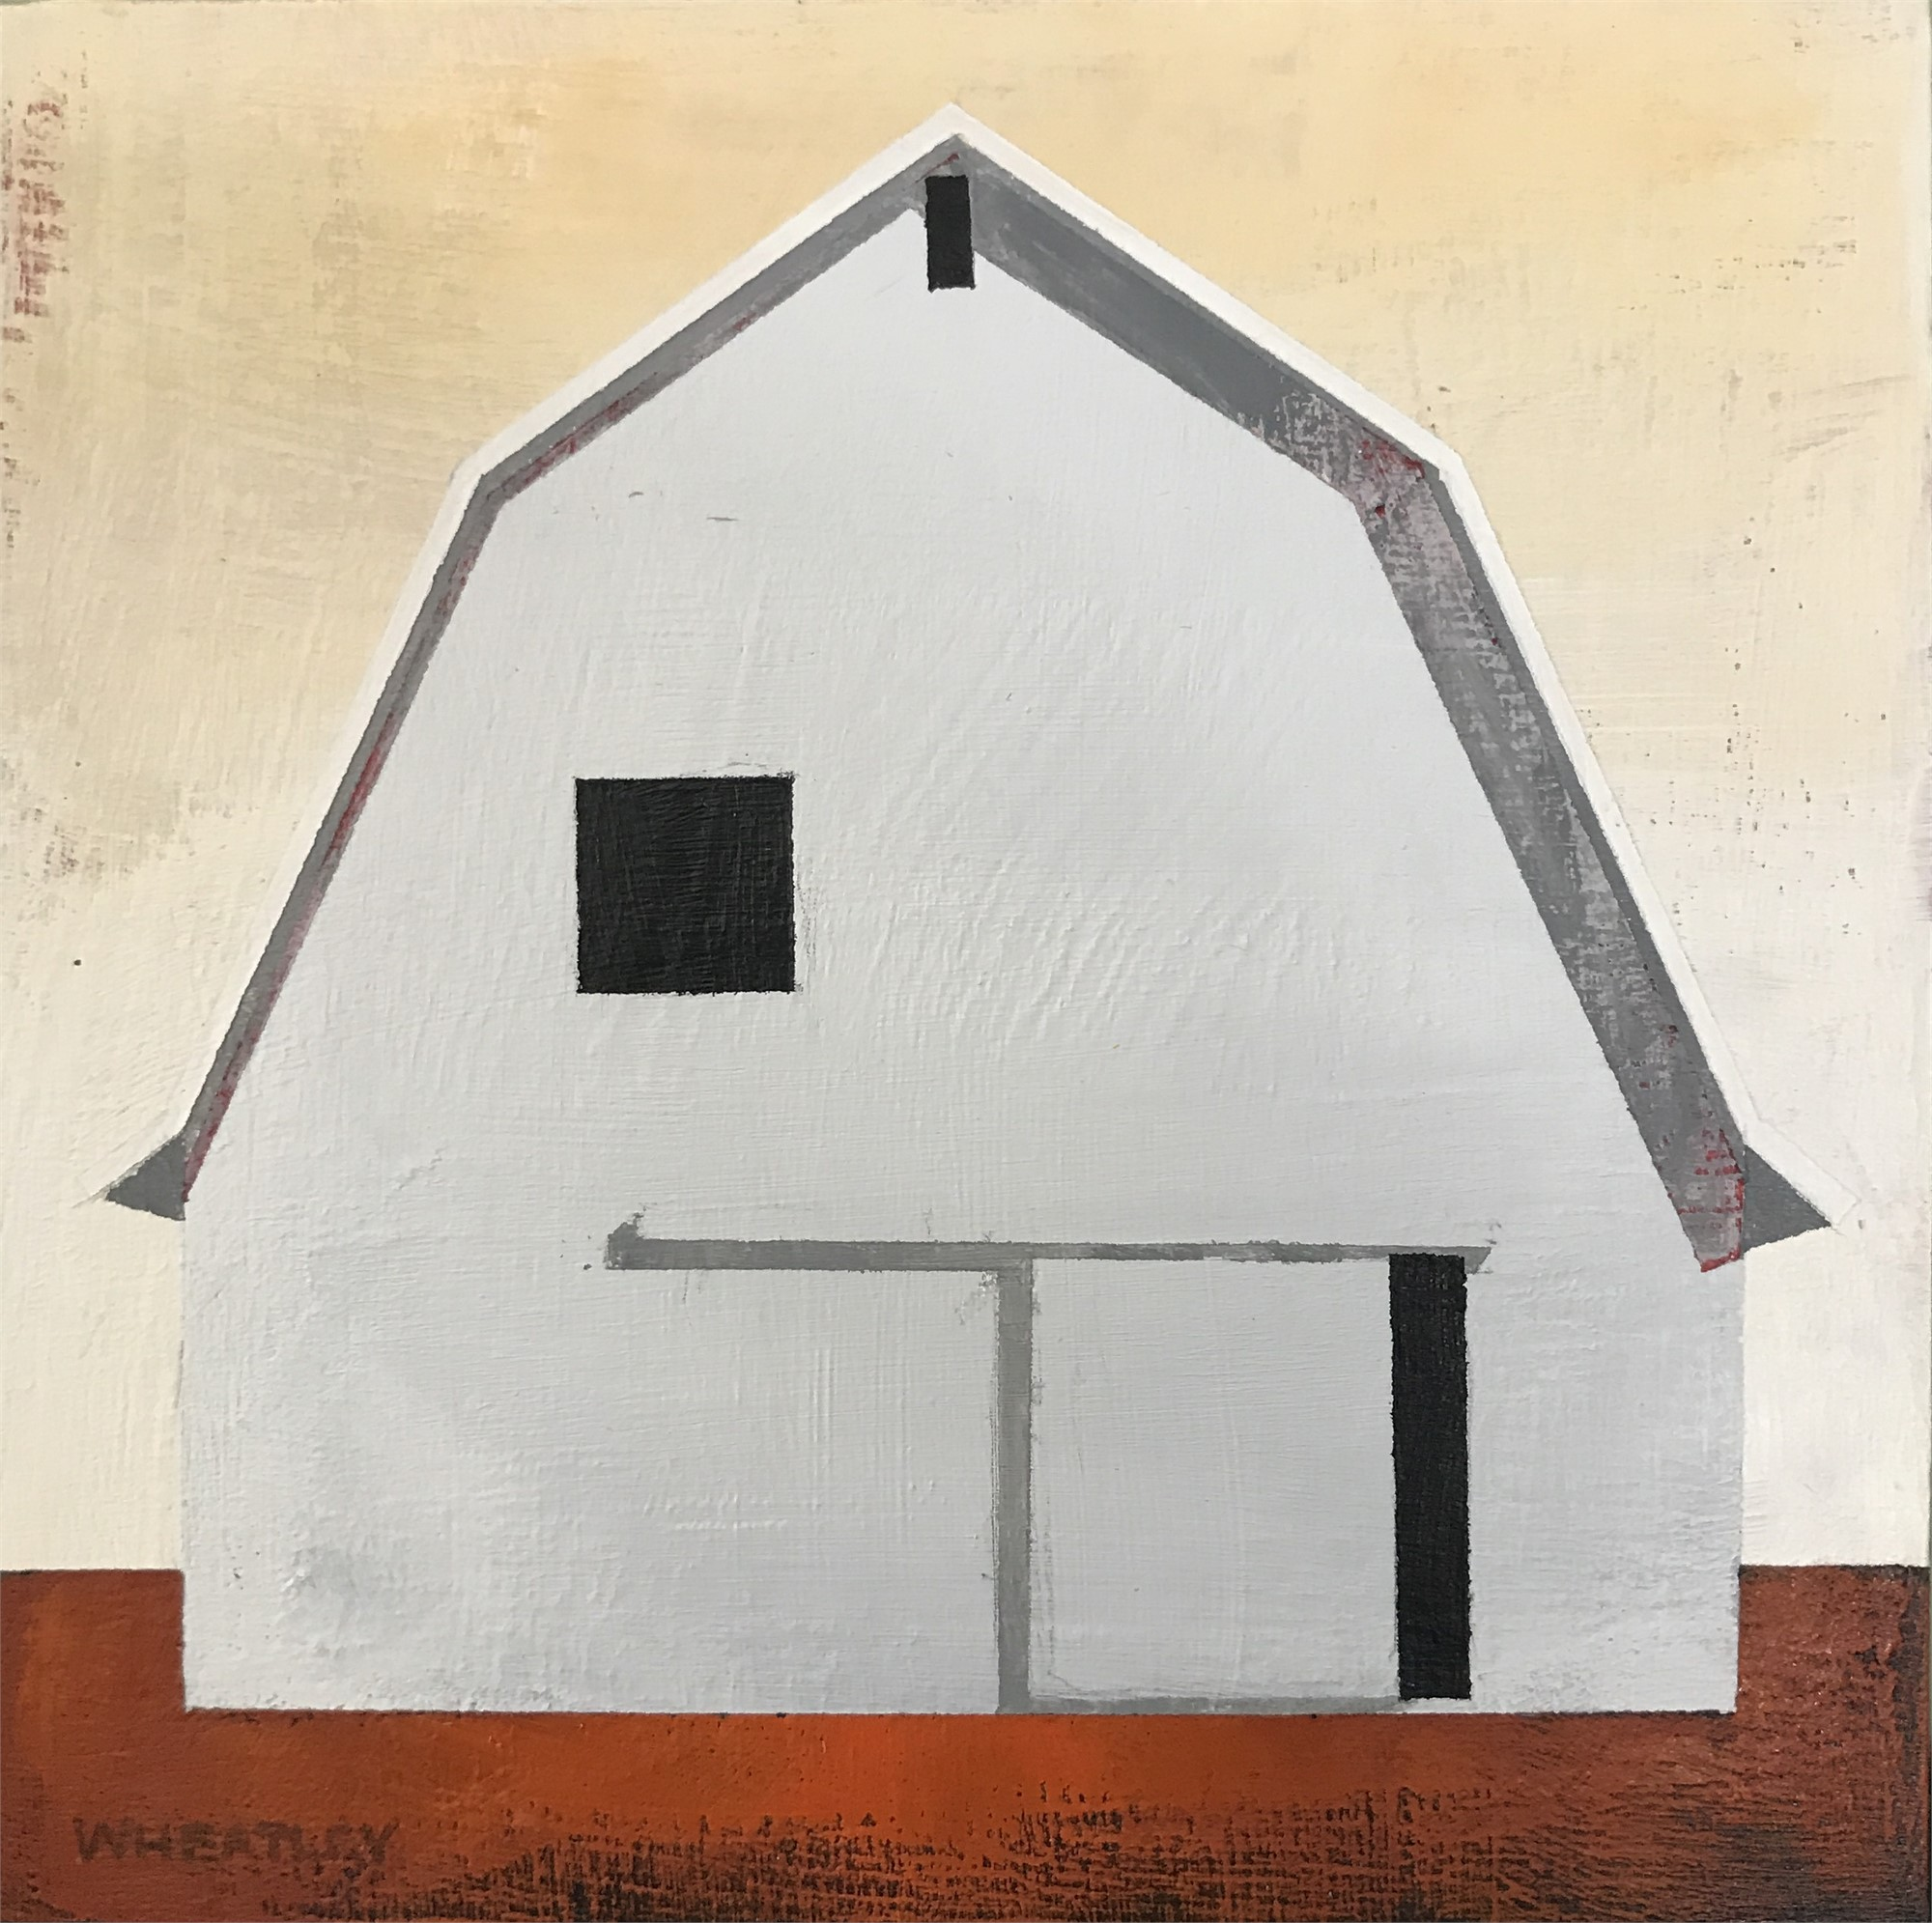 White Barn III by Justin Wheatley